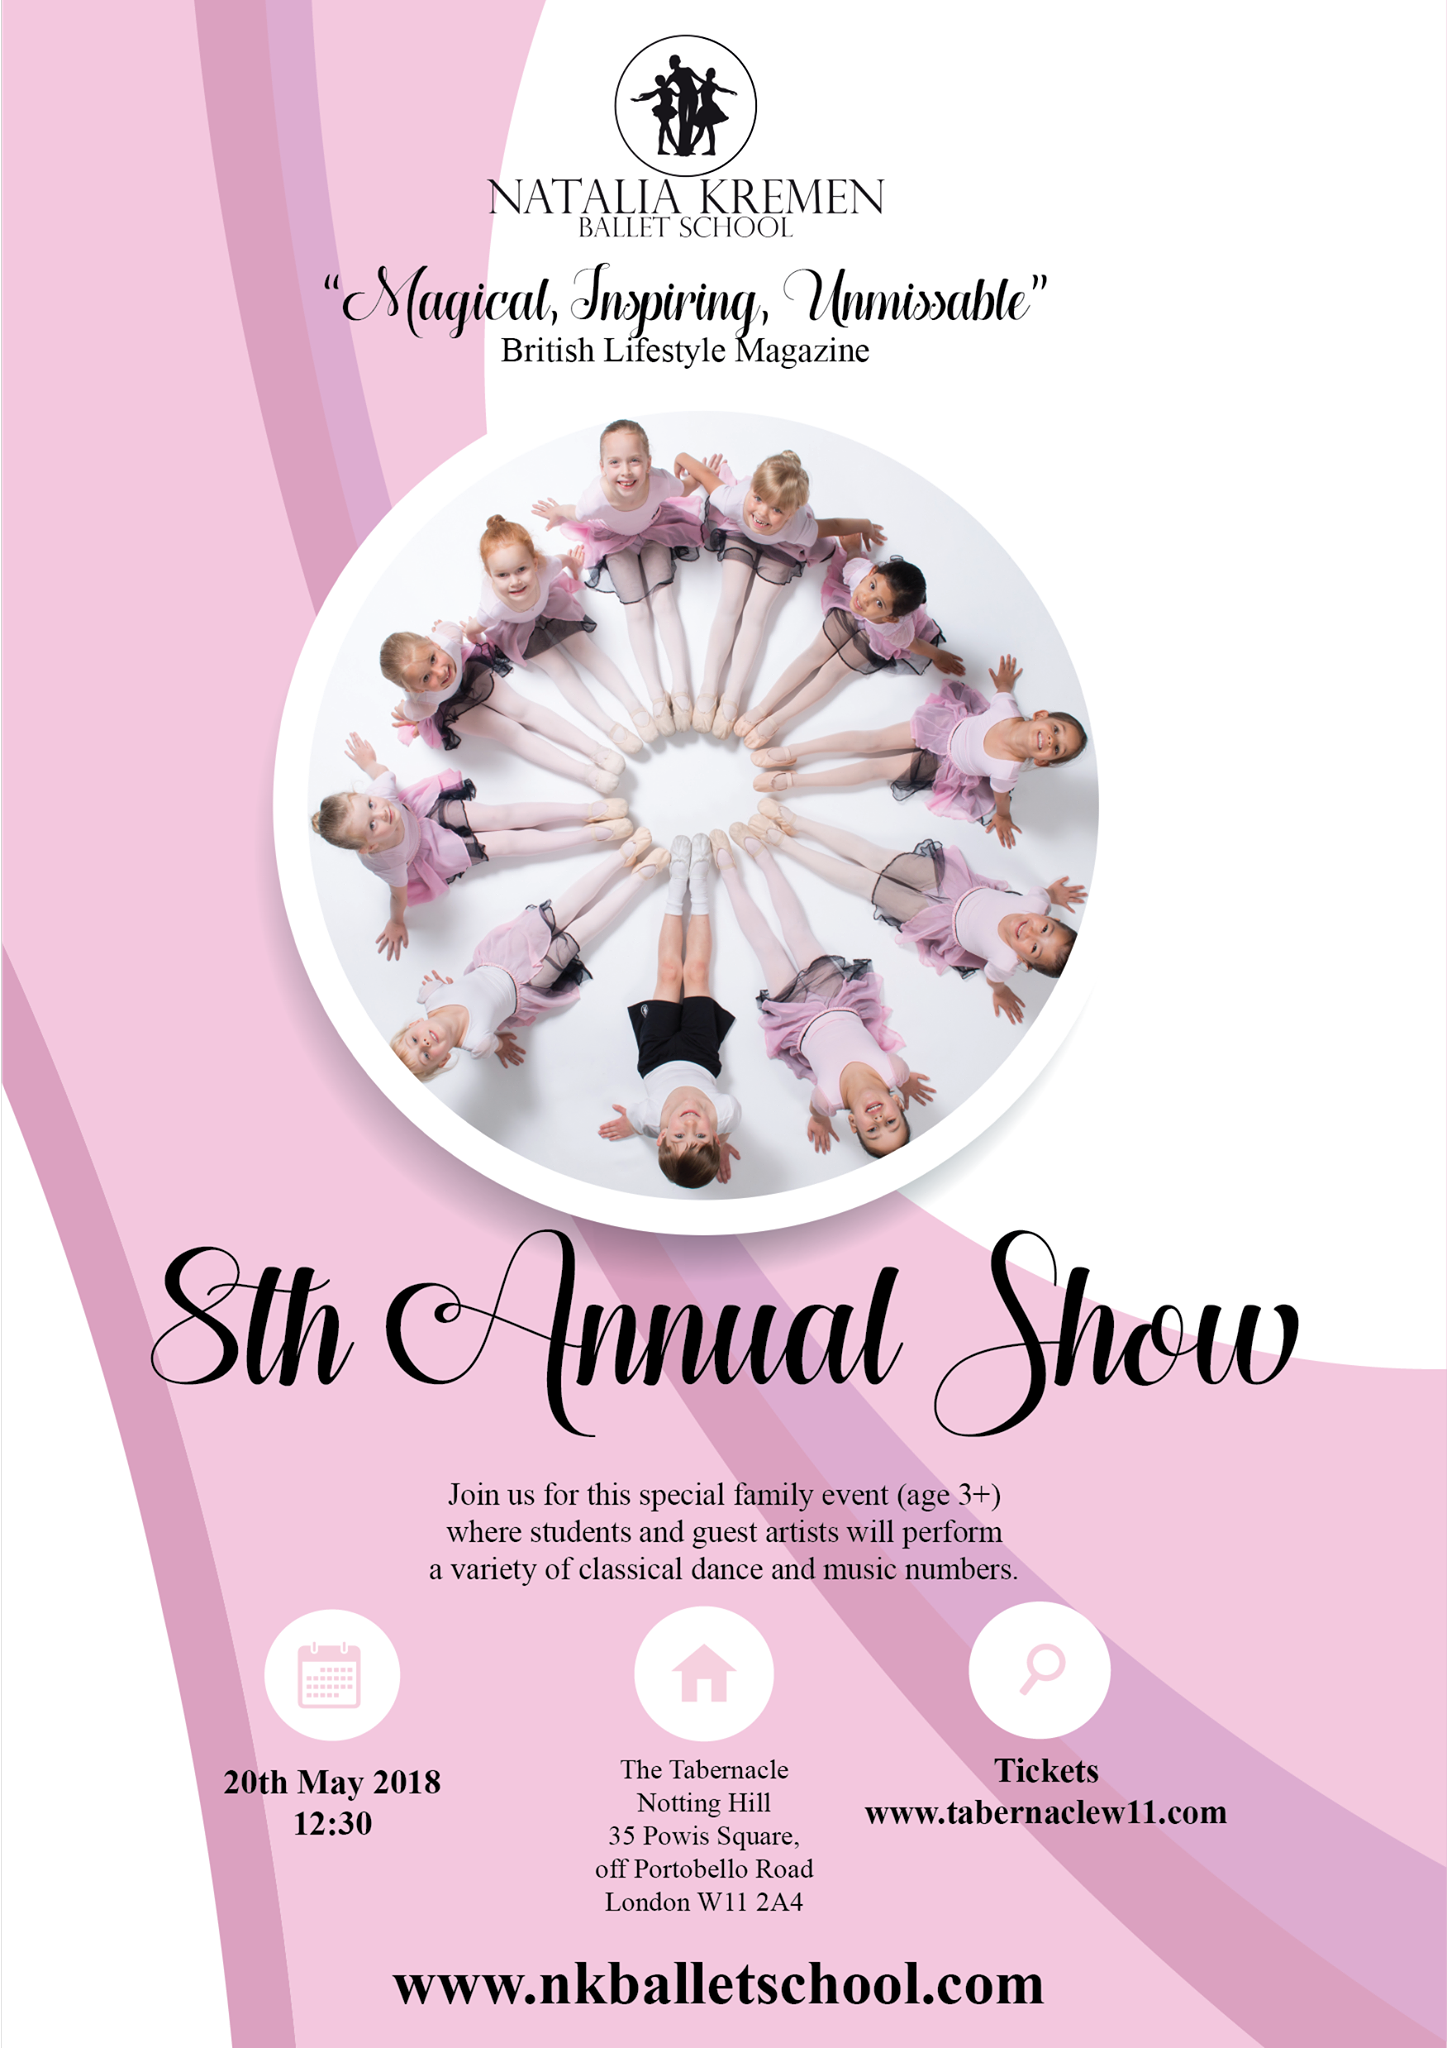 Natalia Kremen Ballet School 8th Annual School Show